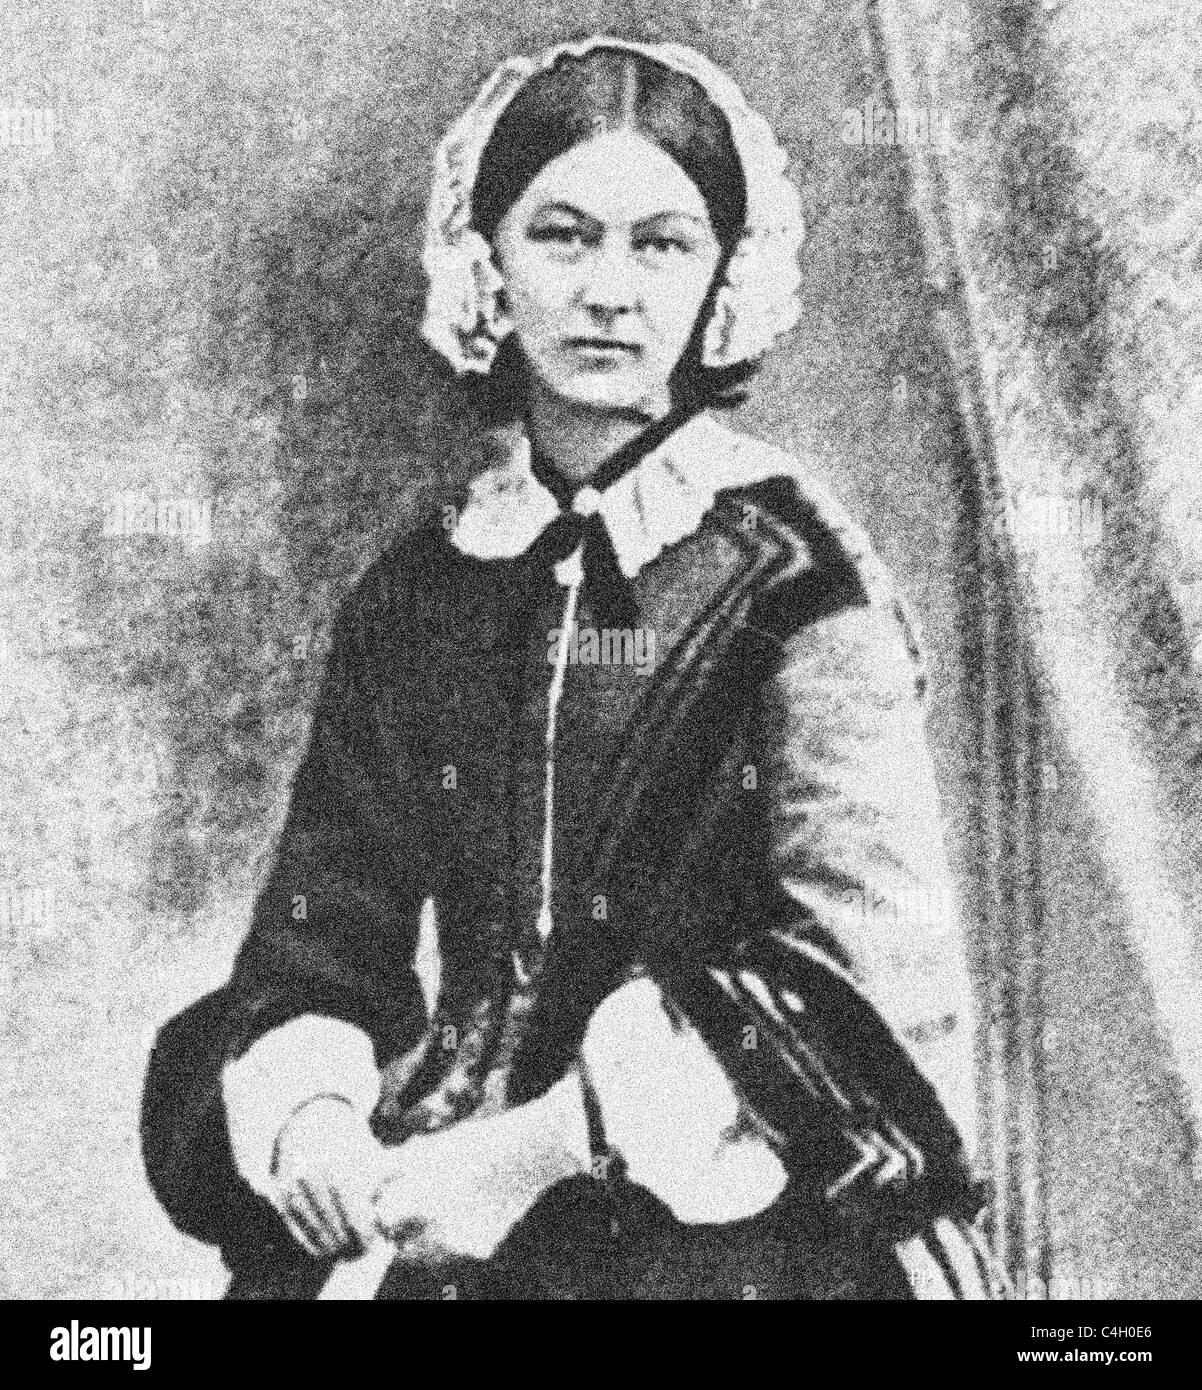 Florence Nightingale Nurse High Resolution Stock Photography And Images Alamy